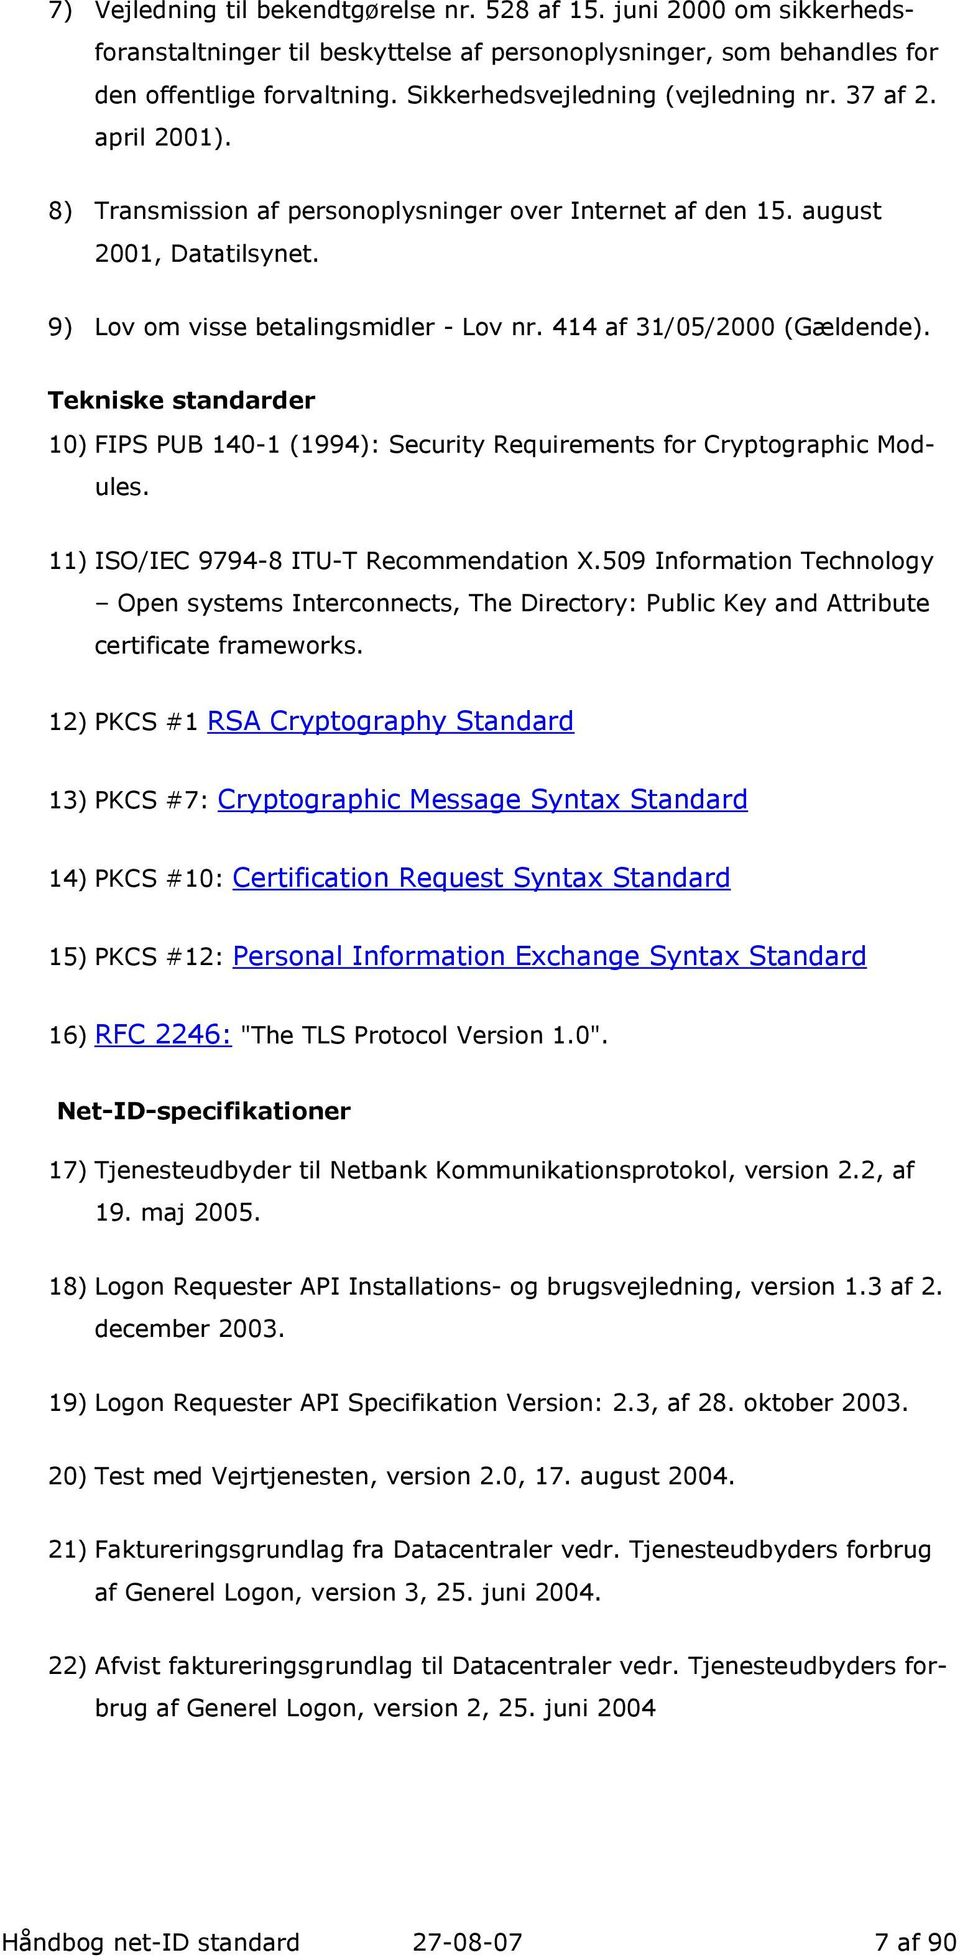 414 af 31/05/2000 (Gældende). Tekniske standarder 10) FIPS PUB 140-1 (1994): Security Requirements for Cryptographic Modules. 11) ISO/IEC 9794-8 ITU-T Recommendation X.